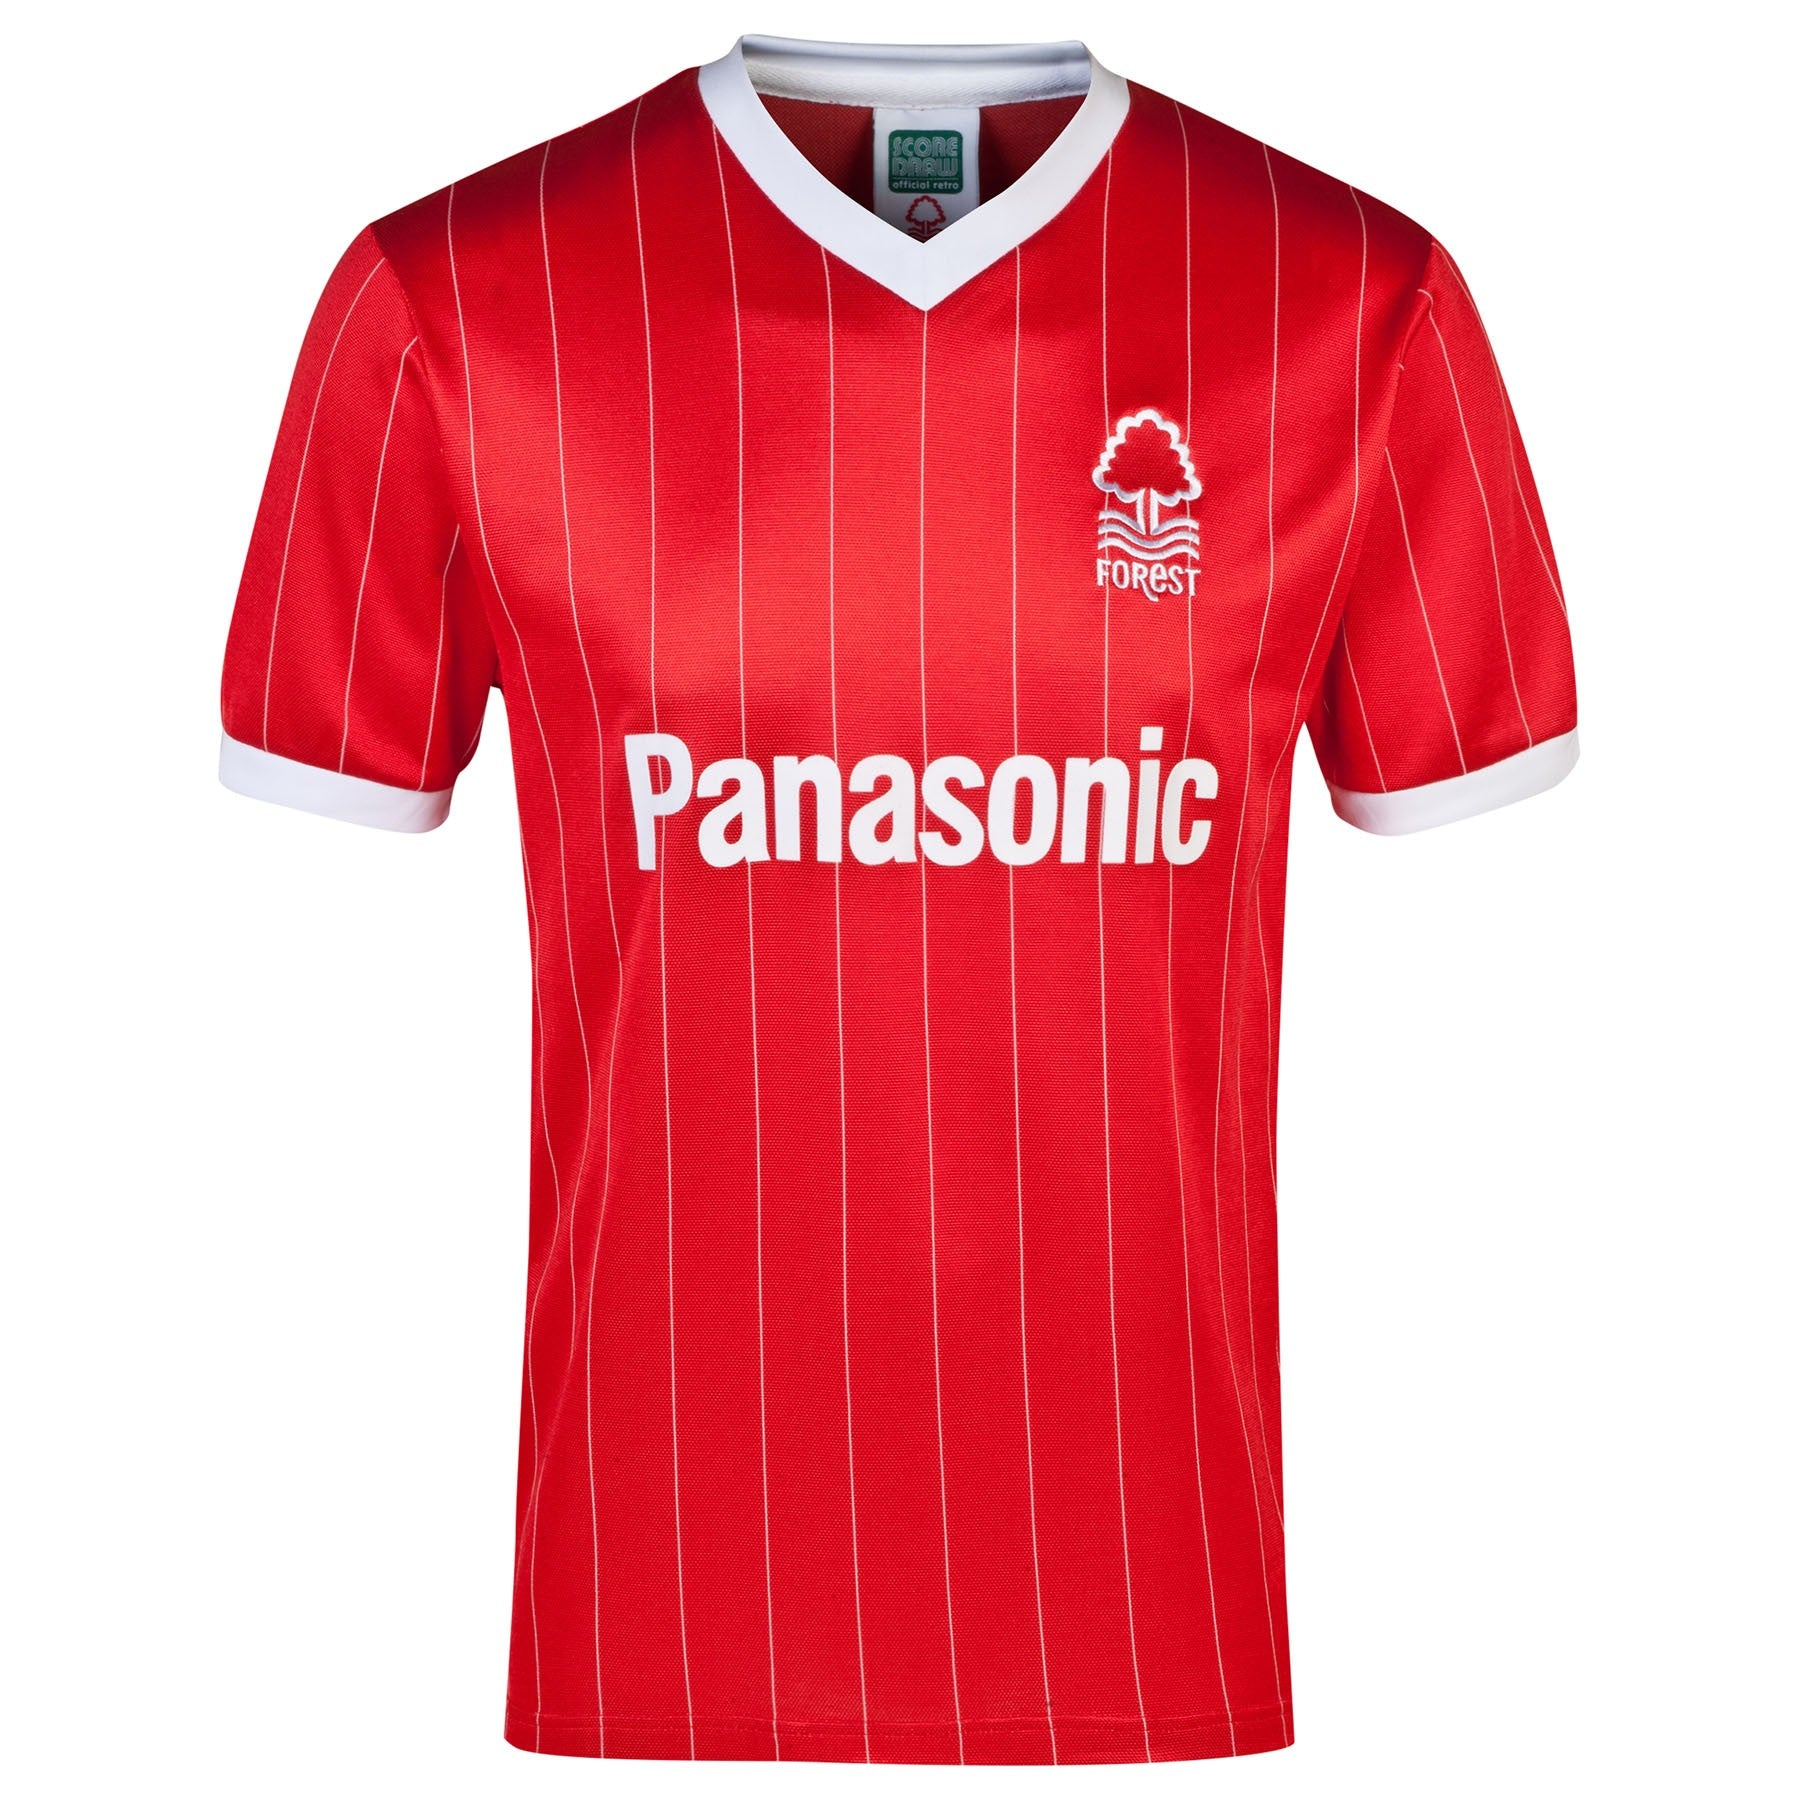 NFFC Mens Retro 1982 Home Shirt - Nottingham Forest